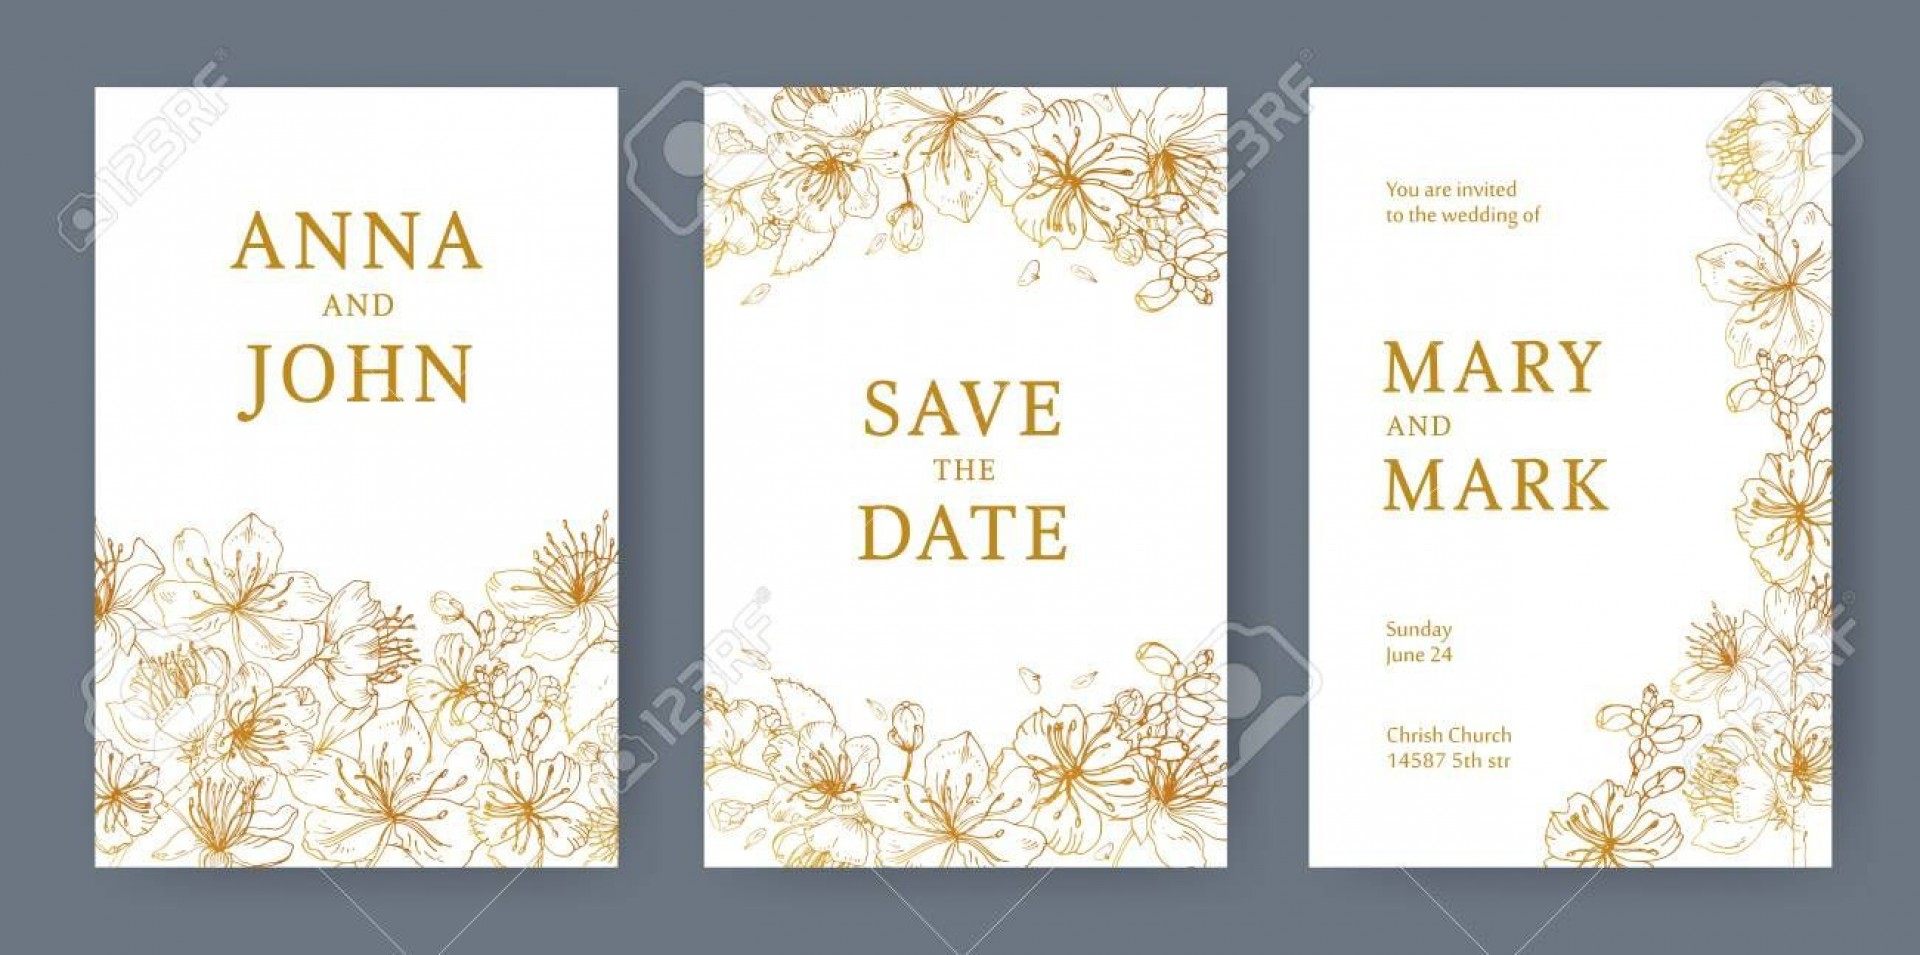 003 Staggering Save The Date Flyer Template Image  Word Event1920